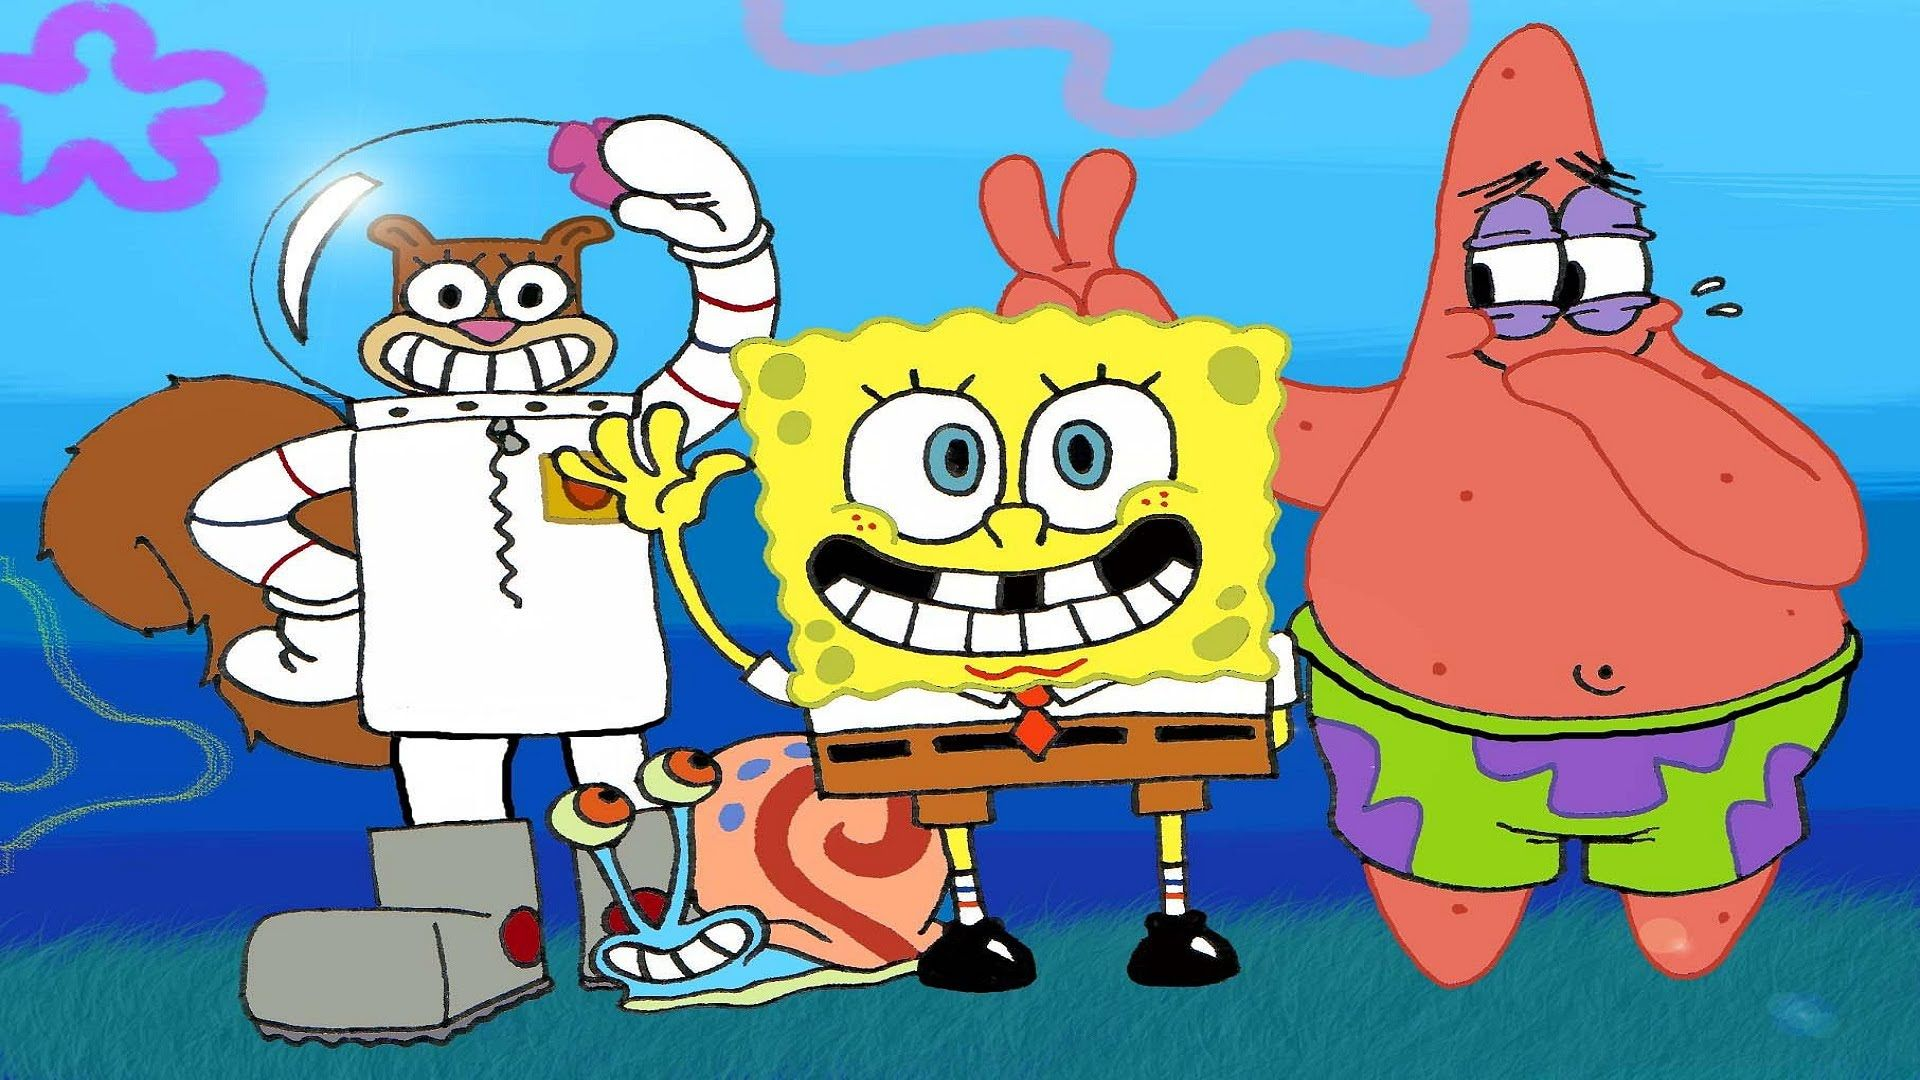 animated cartoon spongebob squarepants full episodes 2015 disney